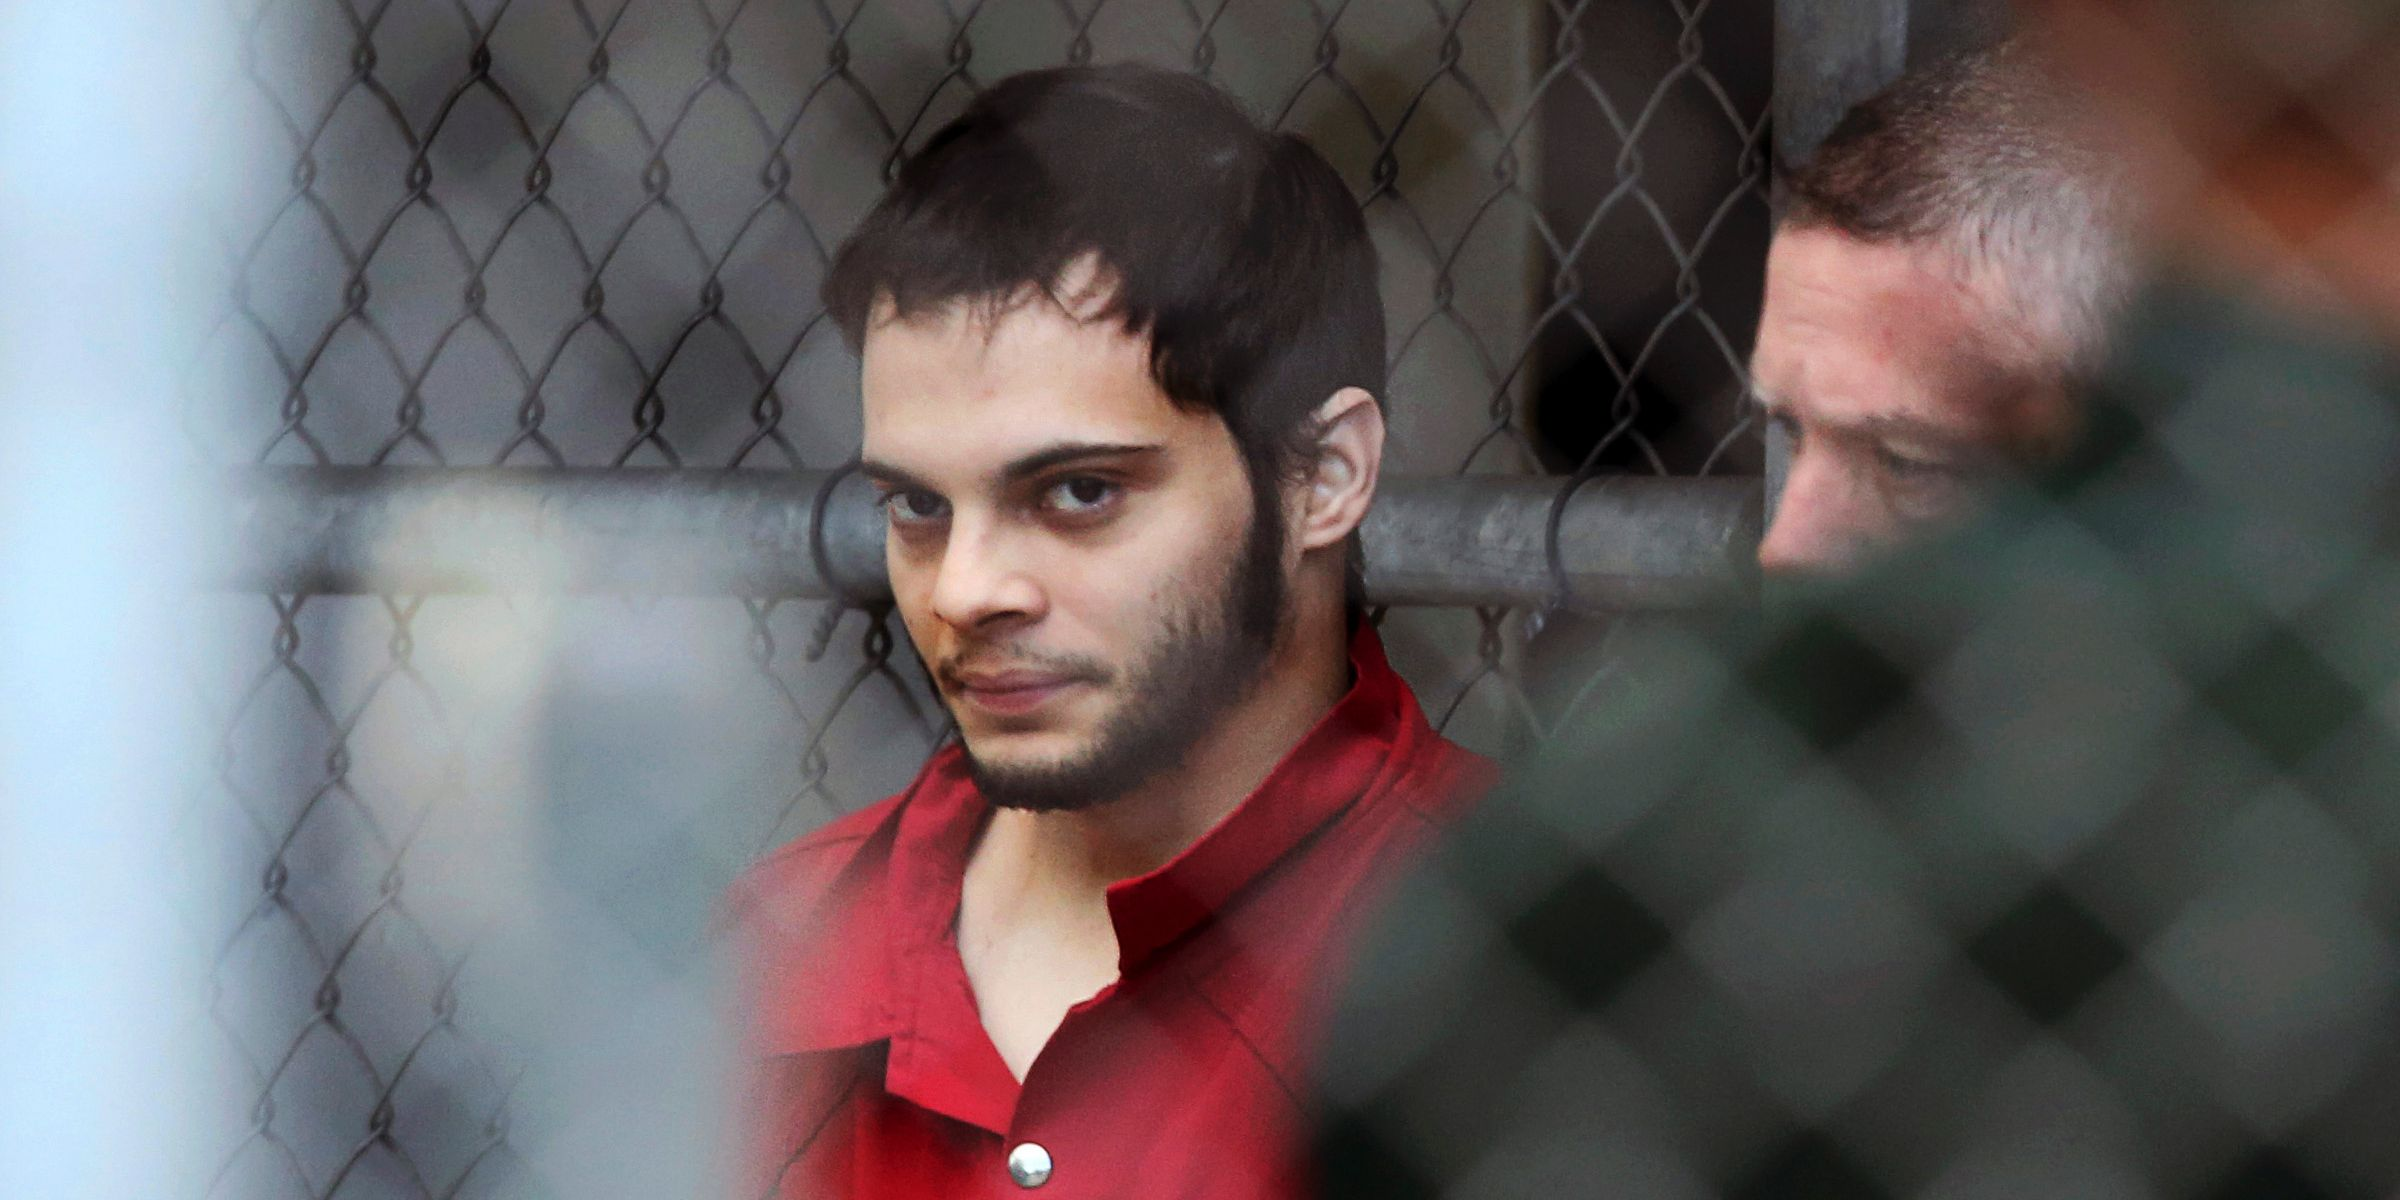 010917-news-fort-lauderdale-shooter-faces-death-penalty-charges.jpg